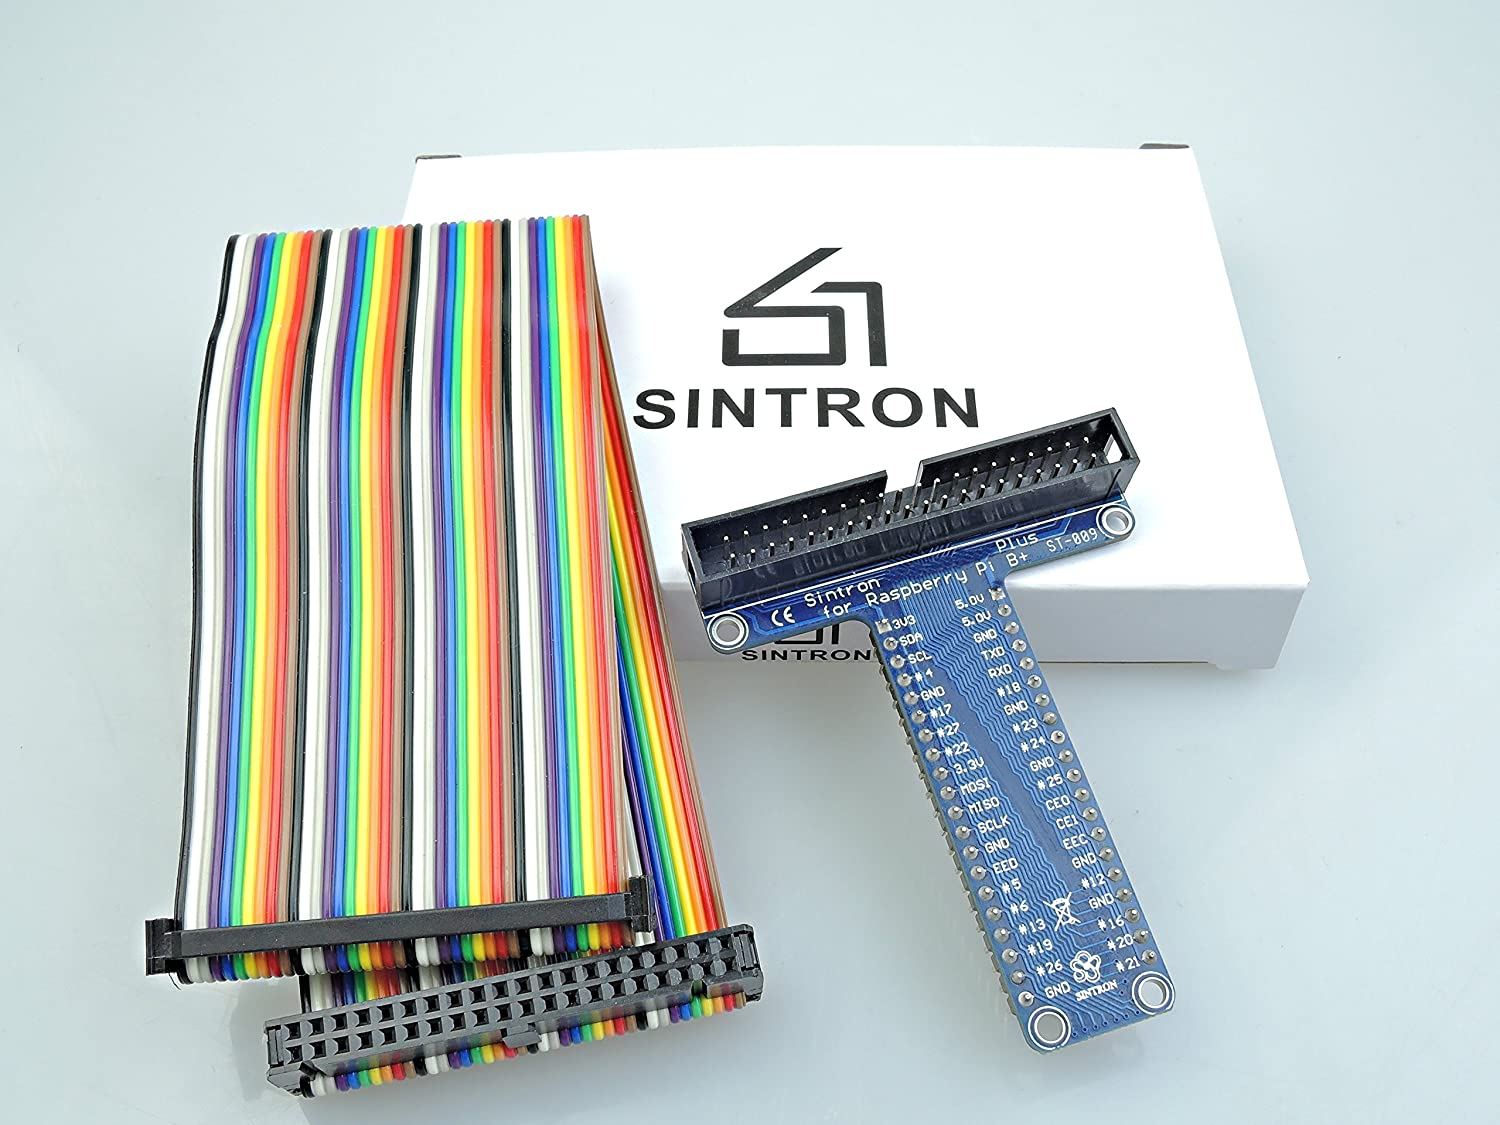 Sintron Pi 3 Model B and Pi Zero 40 Pin GPIO Extension Board with 40 Pin Rainbow Color Ribbon Cable for Raspberry Pi 1 Models A+ and B+ Pi 2 Model B